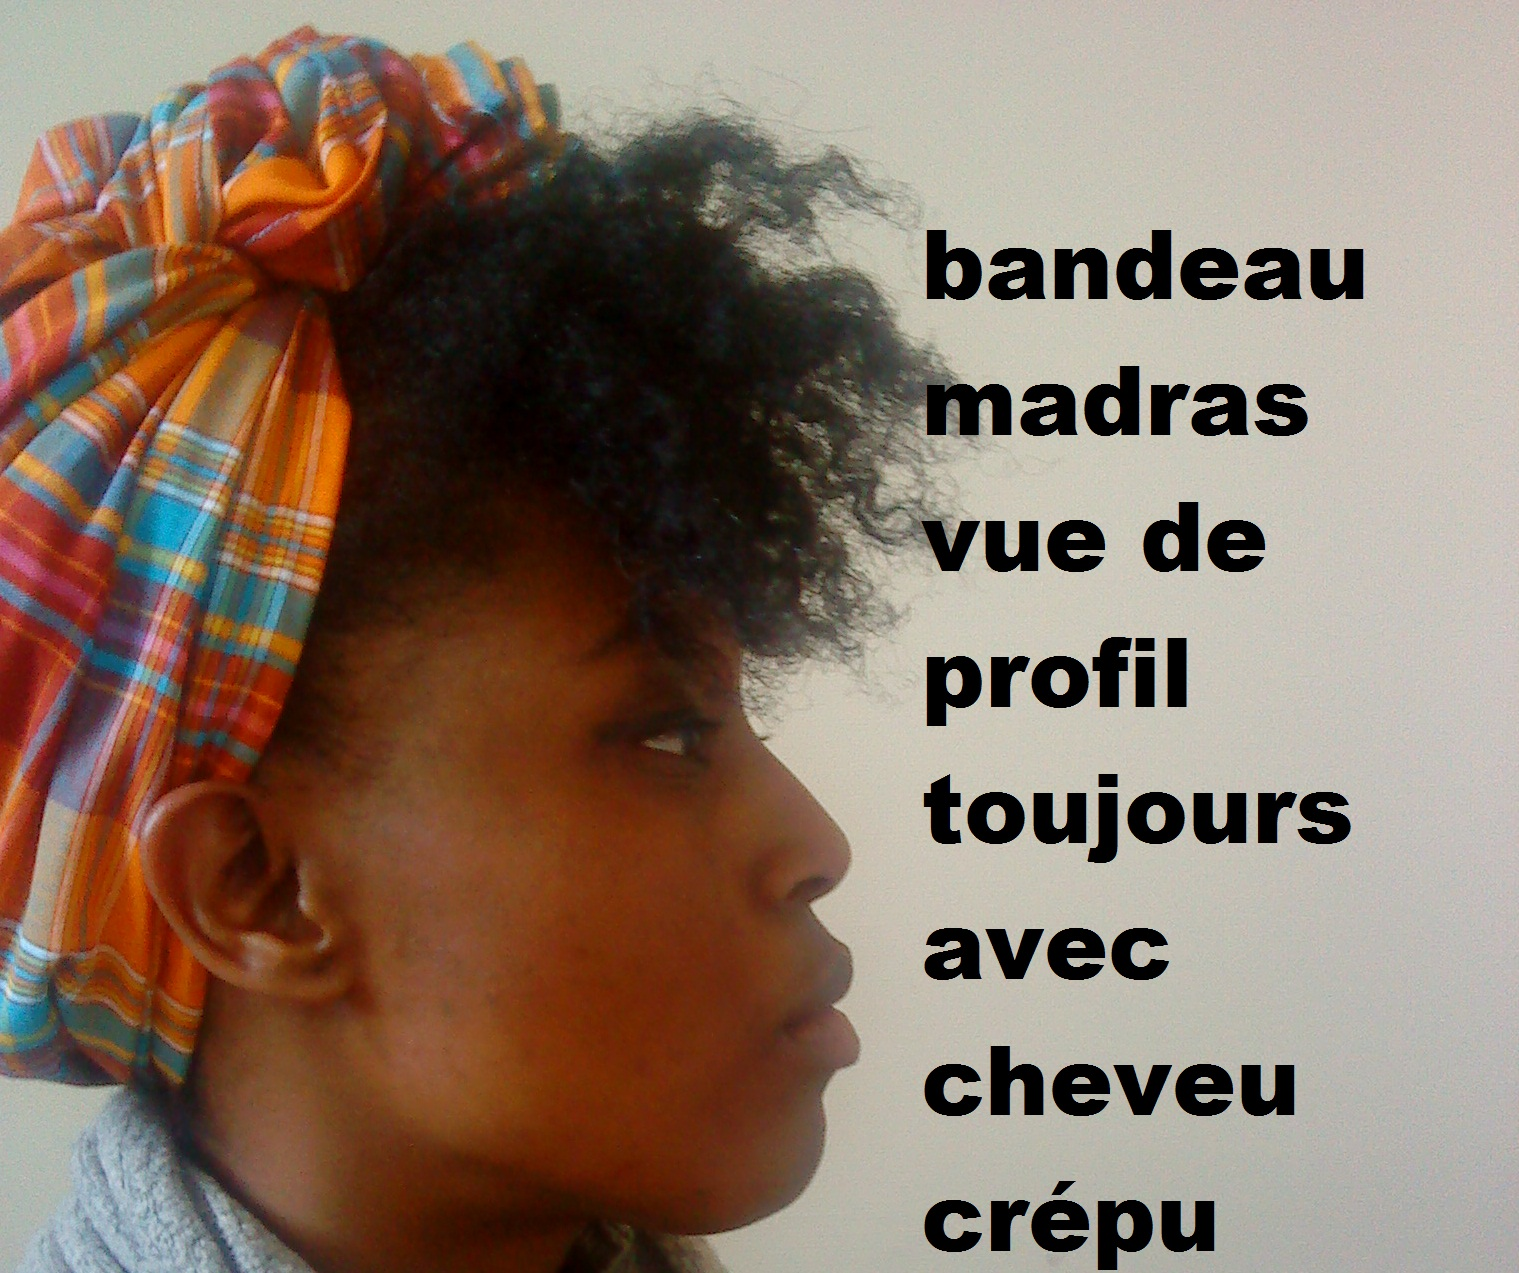 Coiffure Afro Bandeau Coiffure Mode Afro Style Crepu Frise Boucle